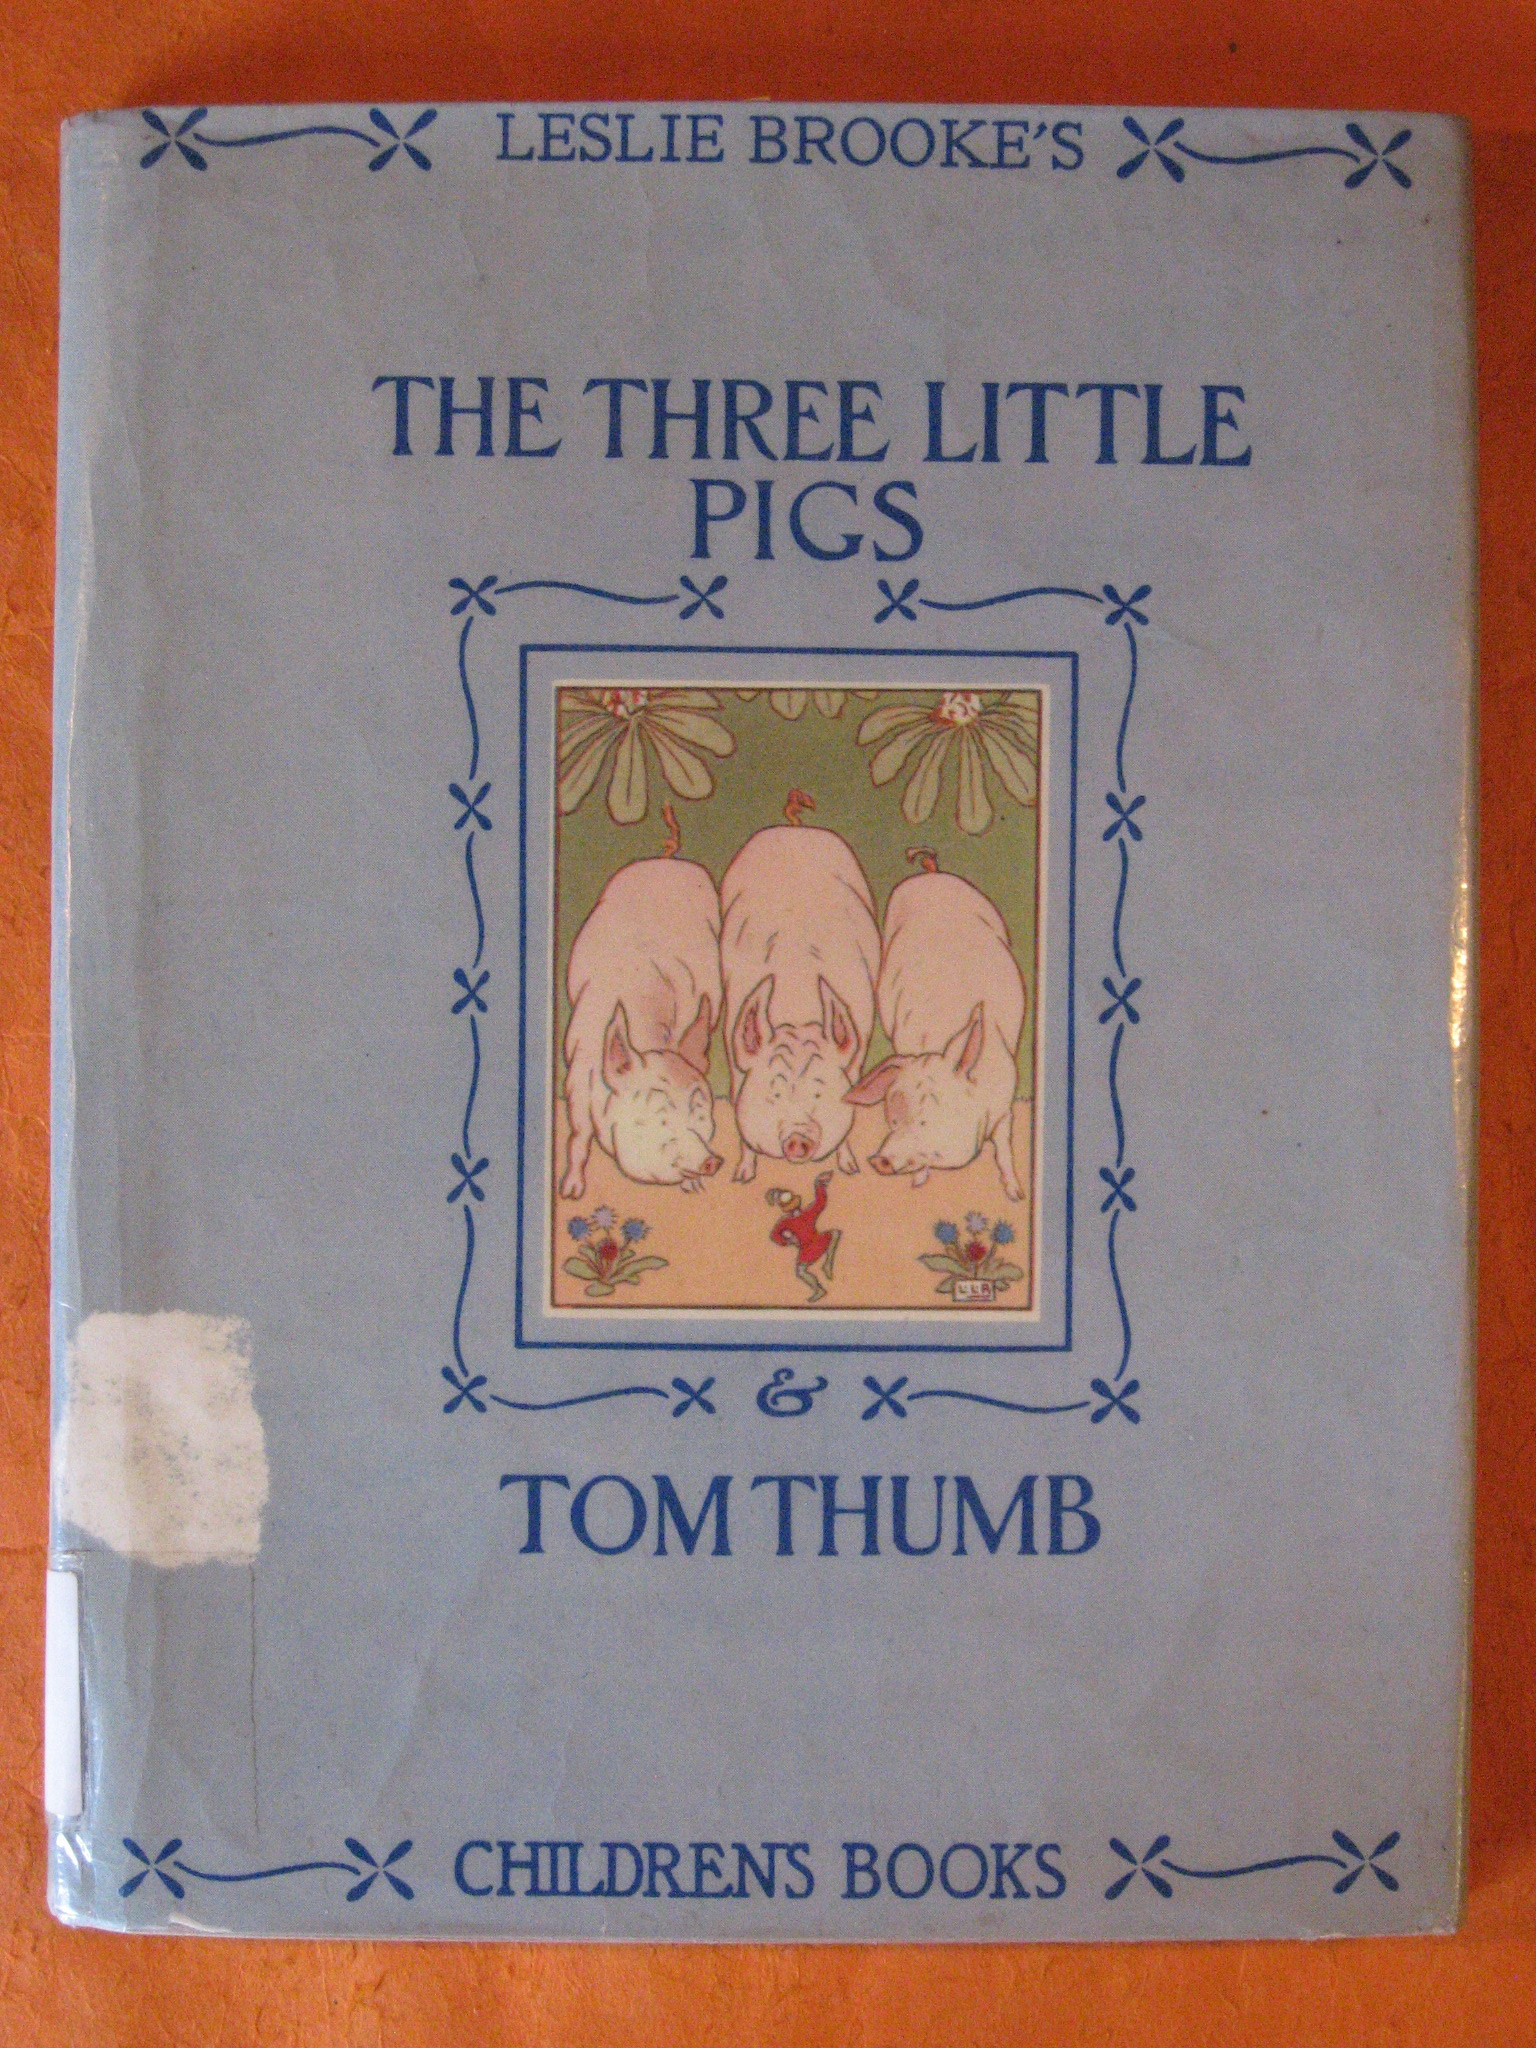 The Three Little Pigs and Tom Thumb, Brooke, L. Leslie